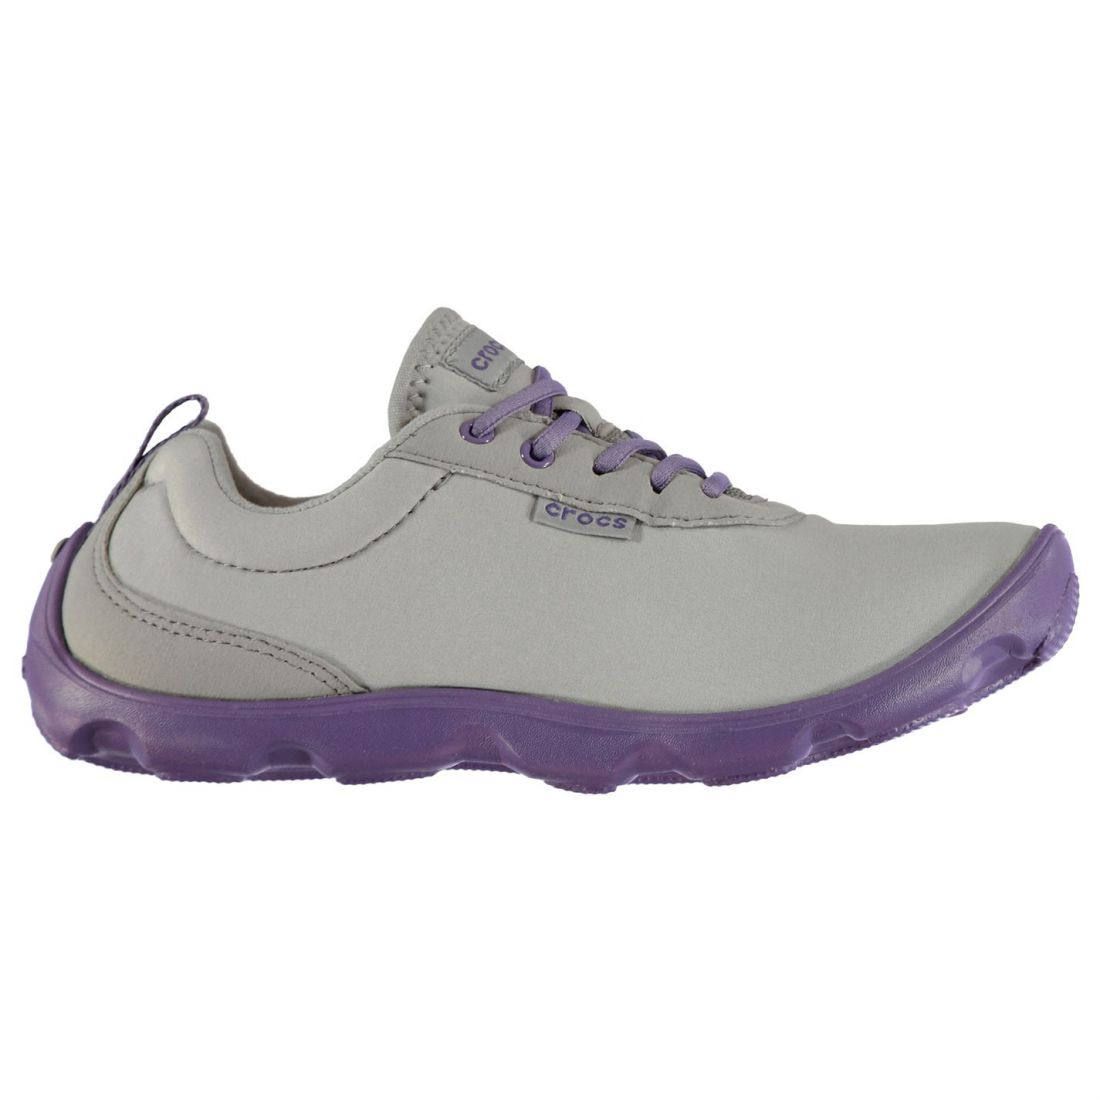 b3a8c2d88cecda Crocs Womens Duet Busy Day Lace Up Trainers Sports Shoes Breathable Padded  Ankle